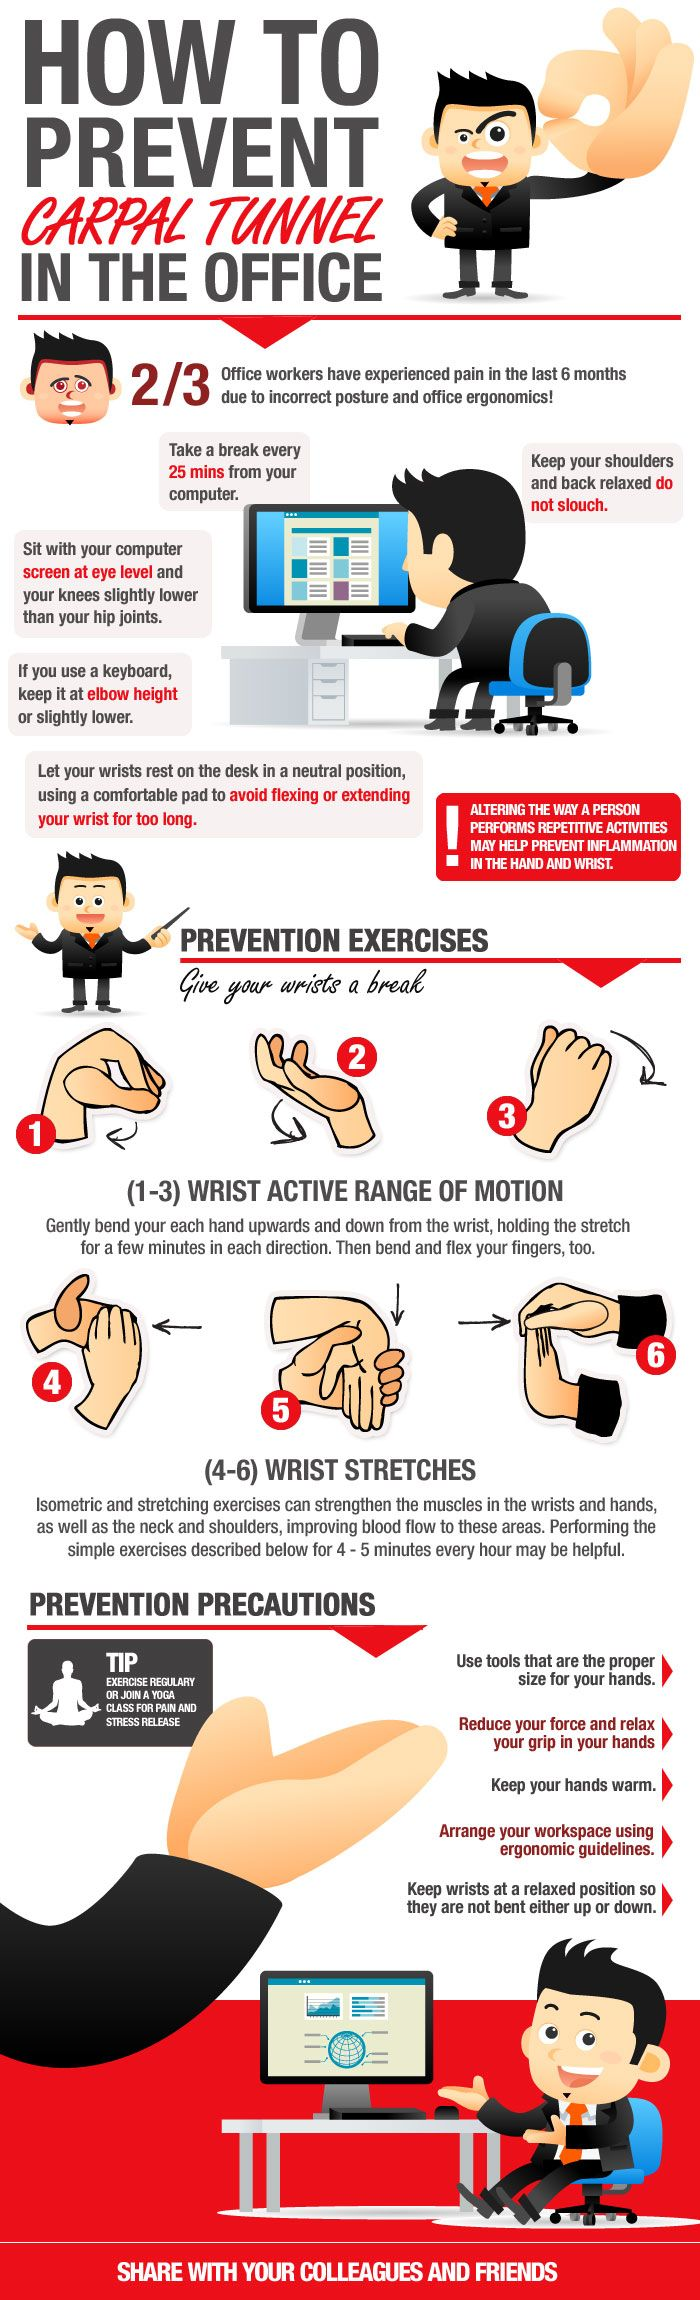 How to prevent Carpal Tunnel Syndrome in the office